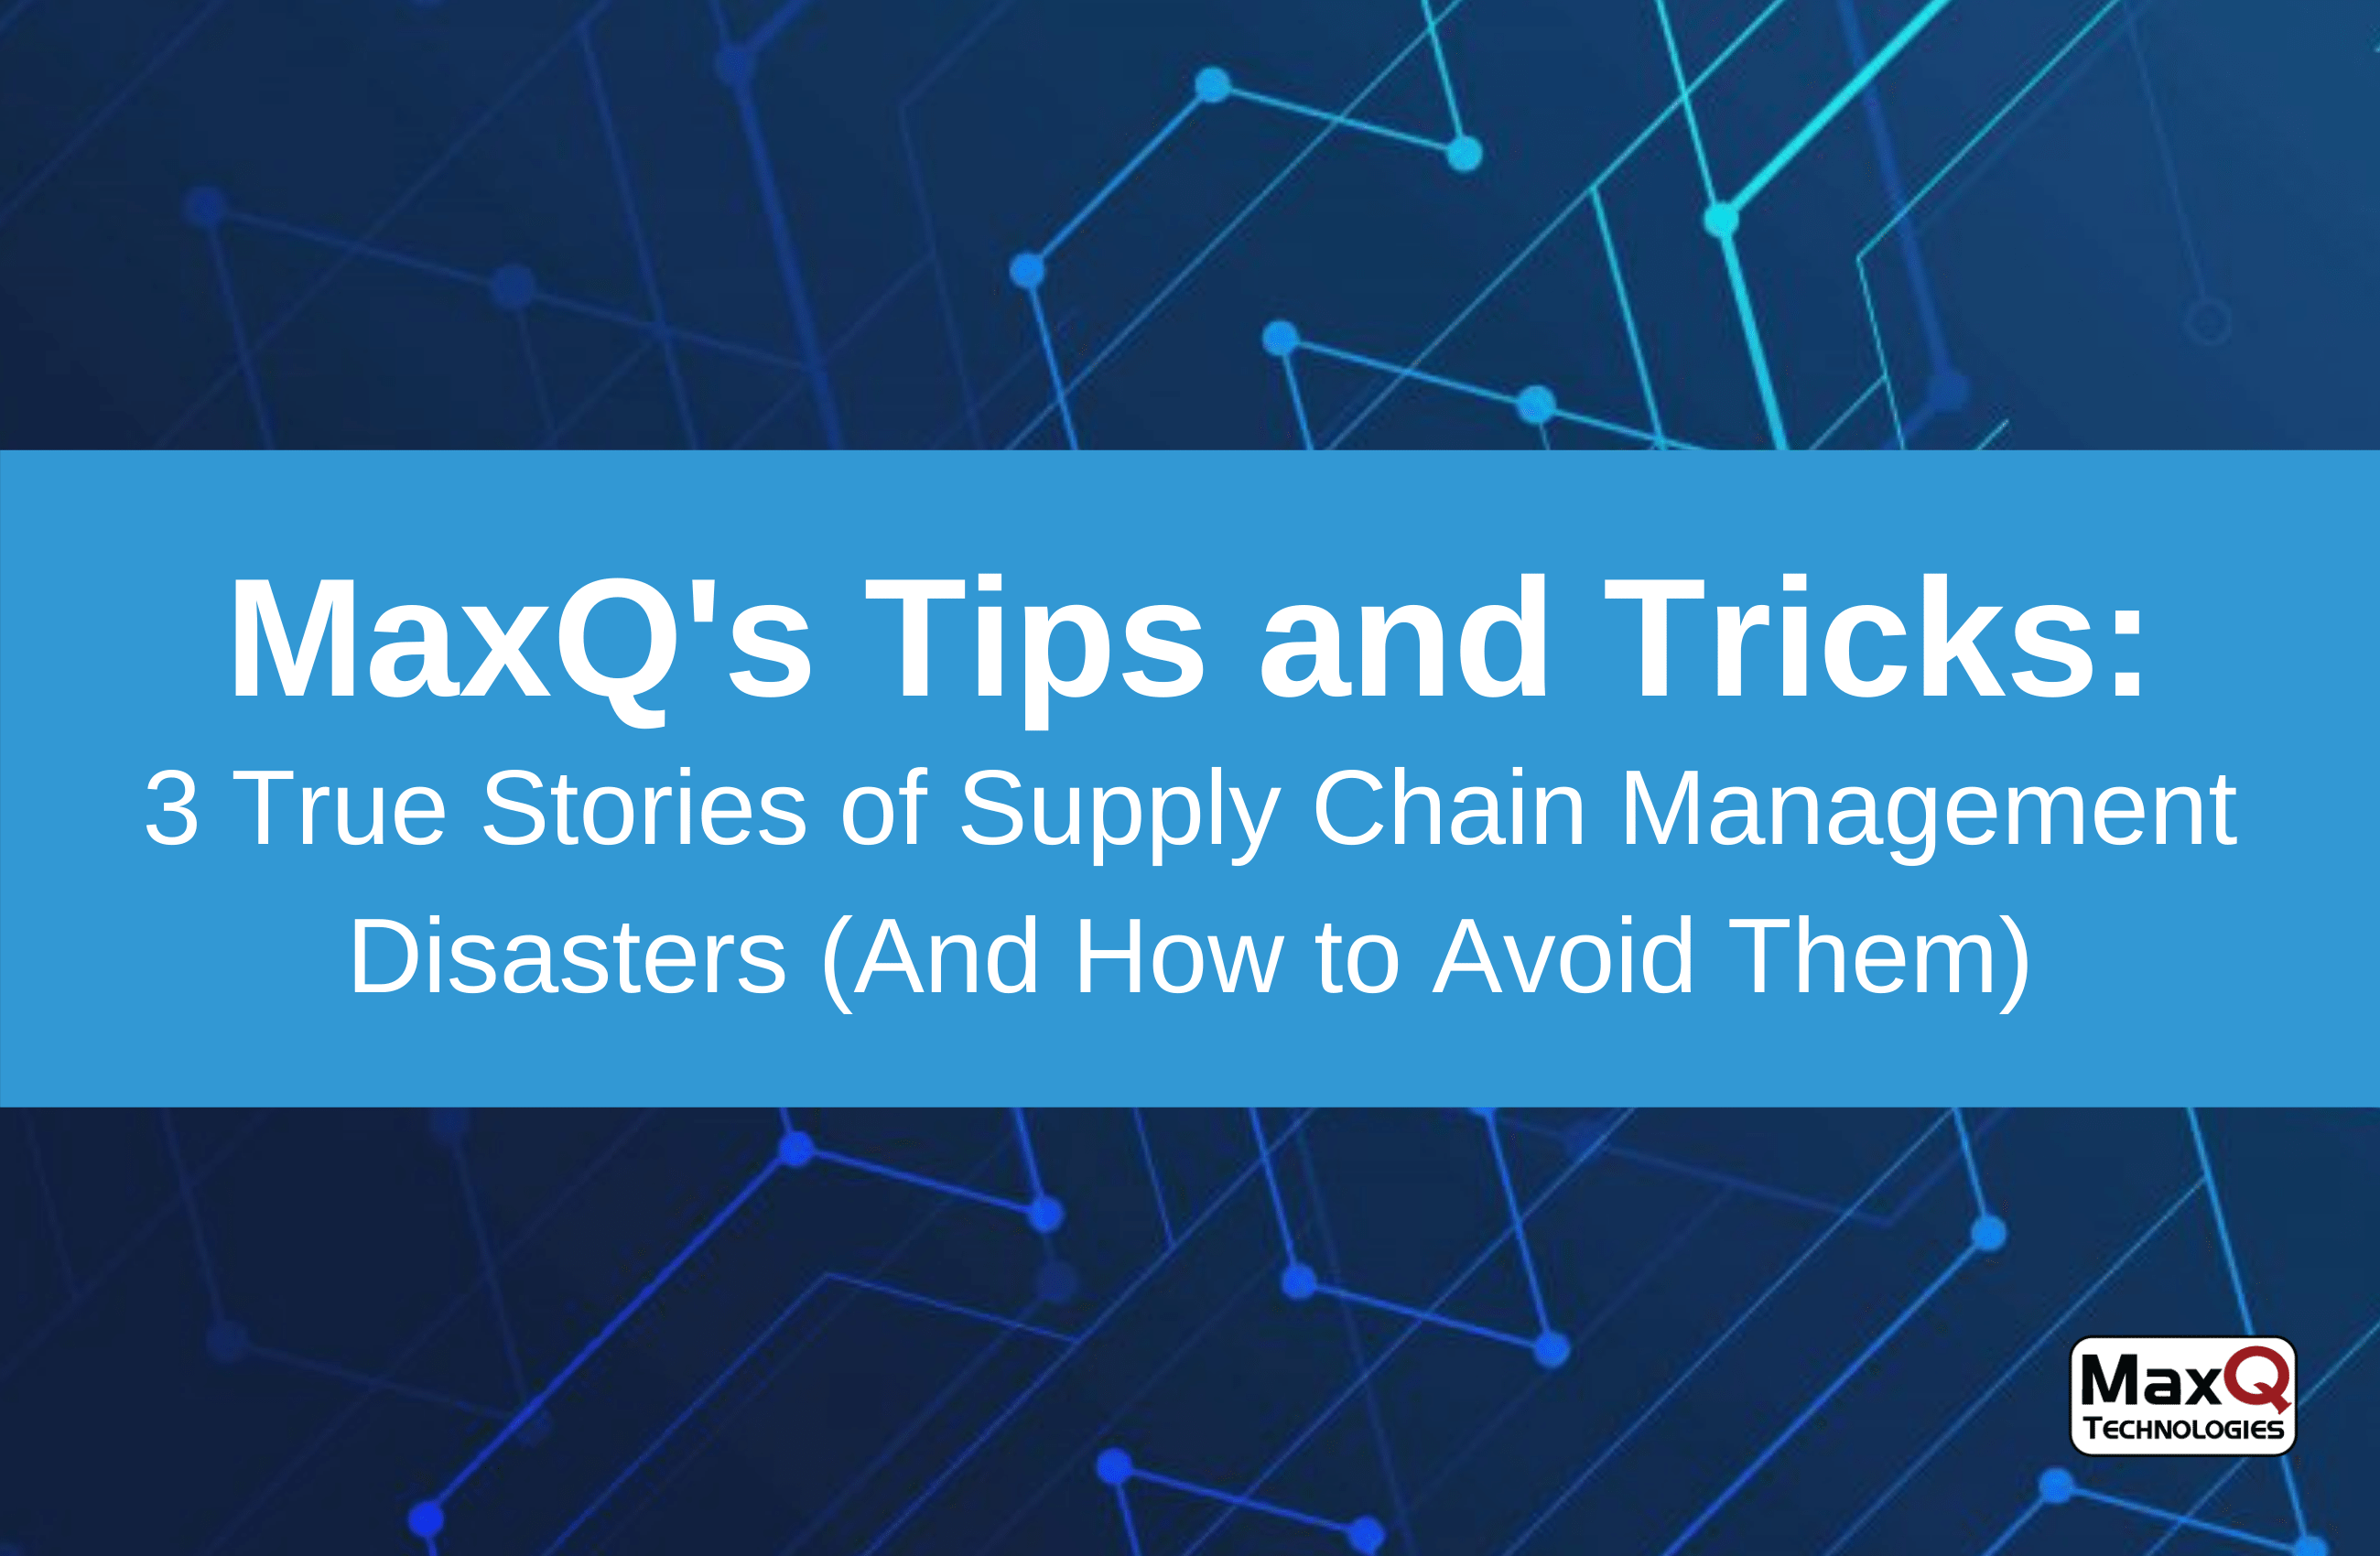 3 True Stories of Supply Chain Management Disasters (And How to Avoid Them)